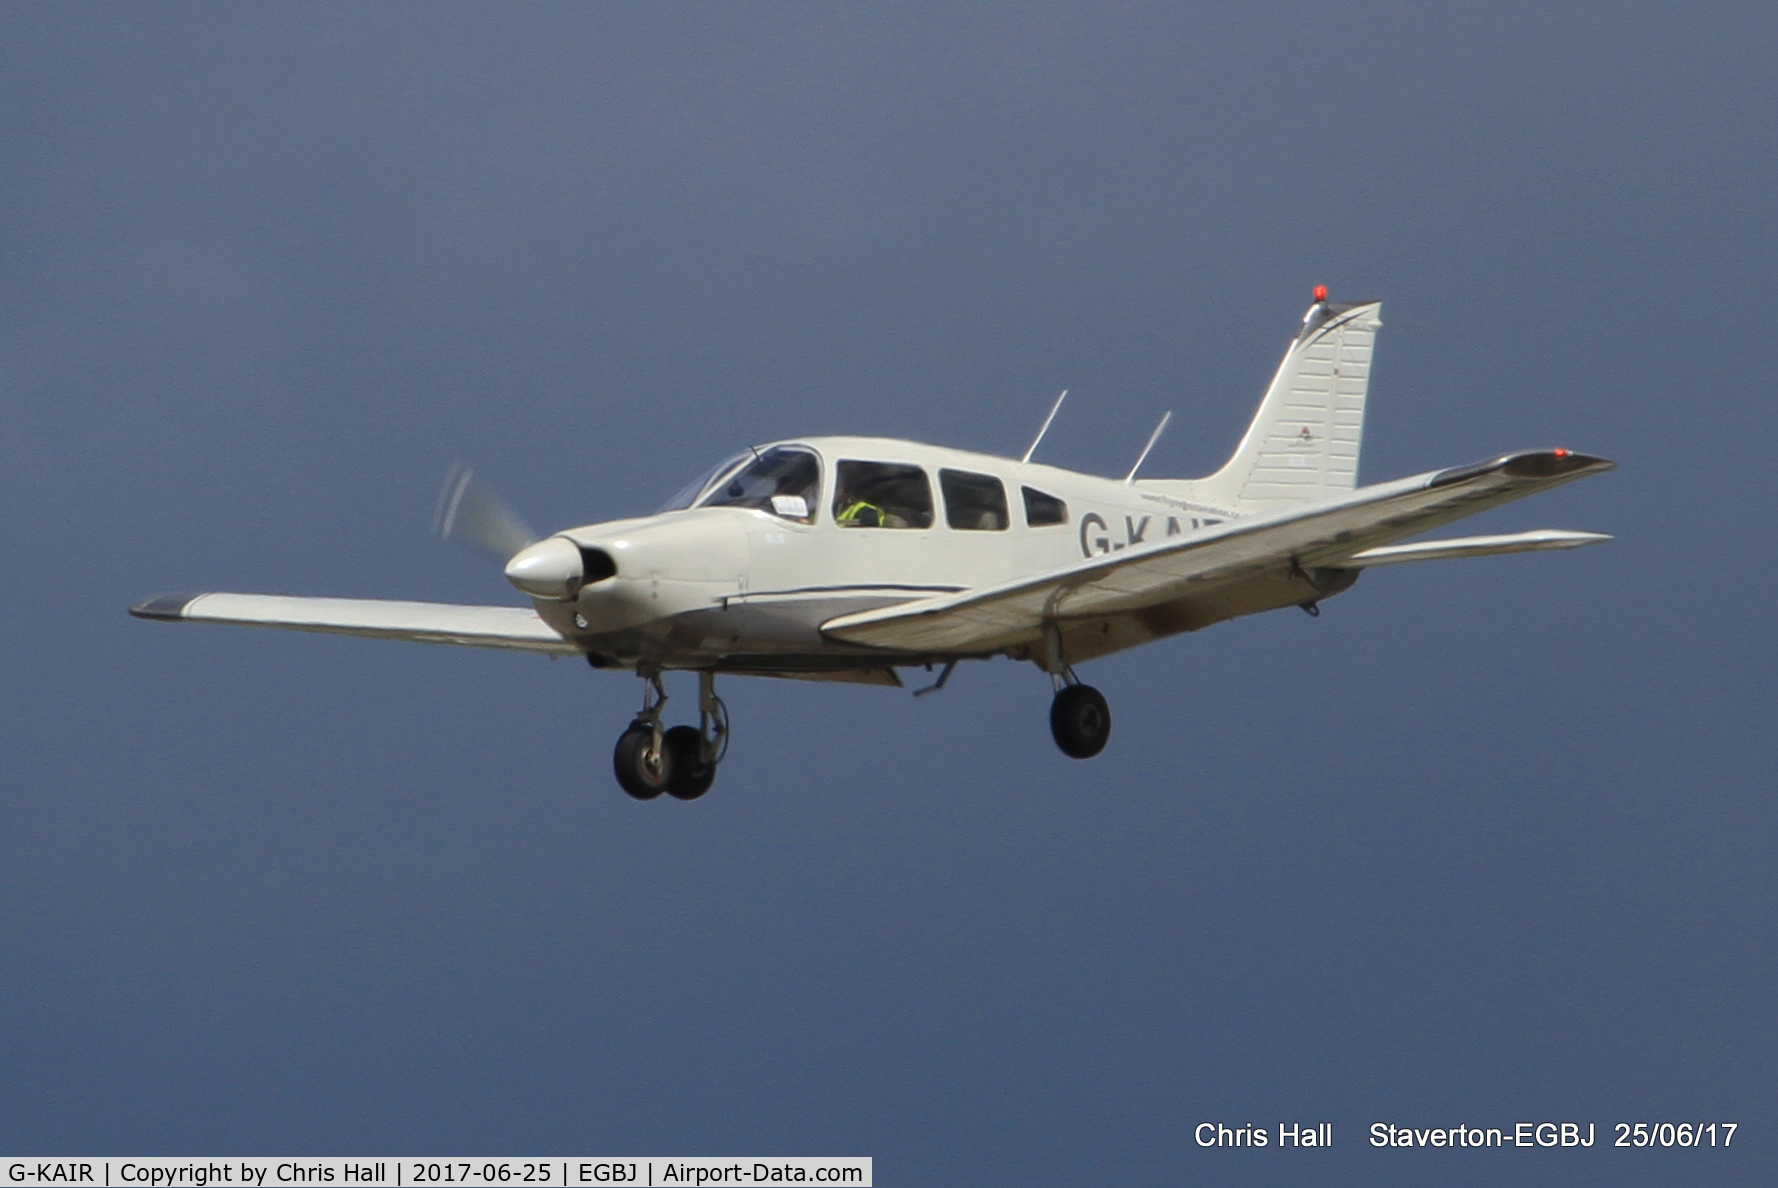 G-KAIR, 1978 Piper PA-28-181 Cherokee Archer II C/N 28-7990176, Project Propeller at Staverton